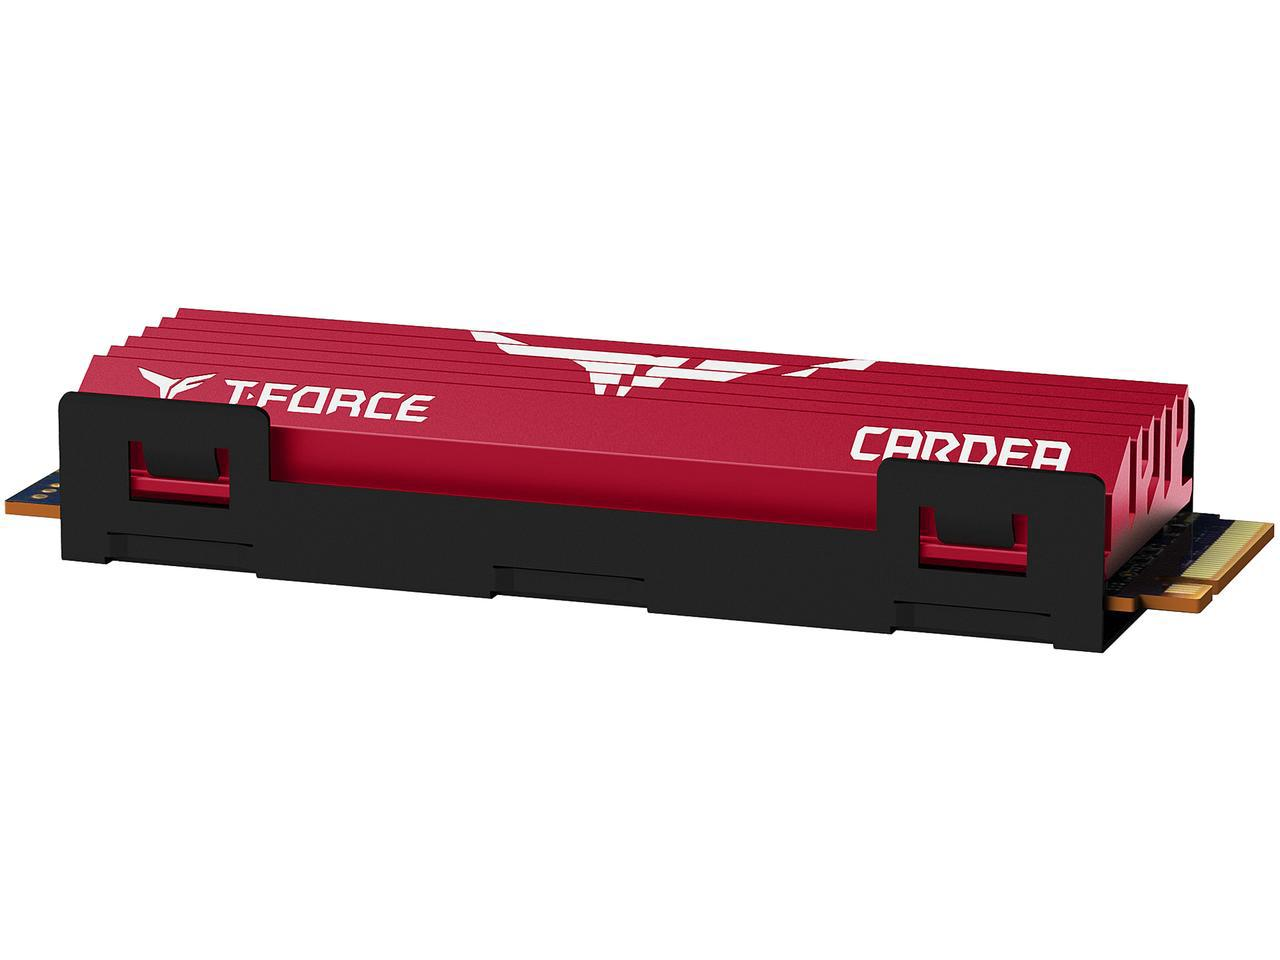 Team Group T-Force Cardea M.2 SSD 2280 480GB PCI-e 3.0 x4 with NVMe 1.2 Internal